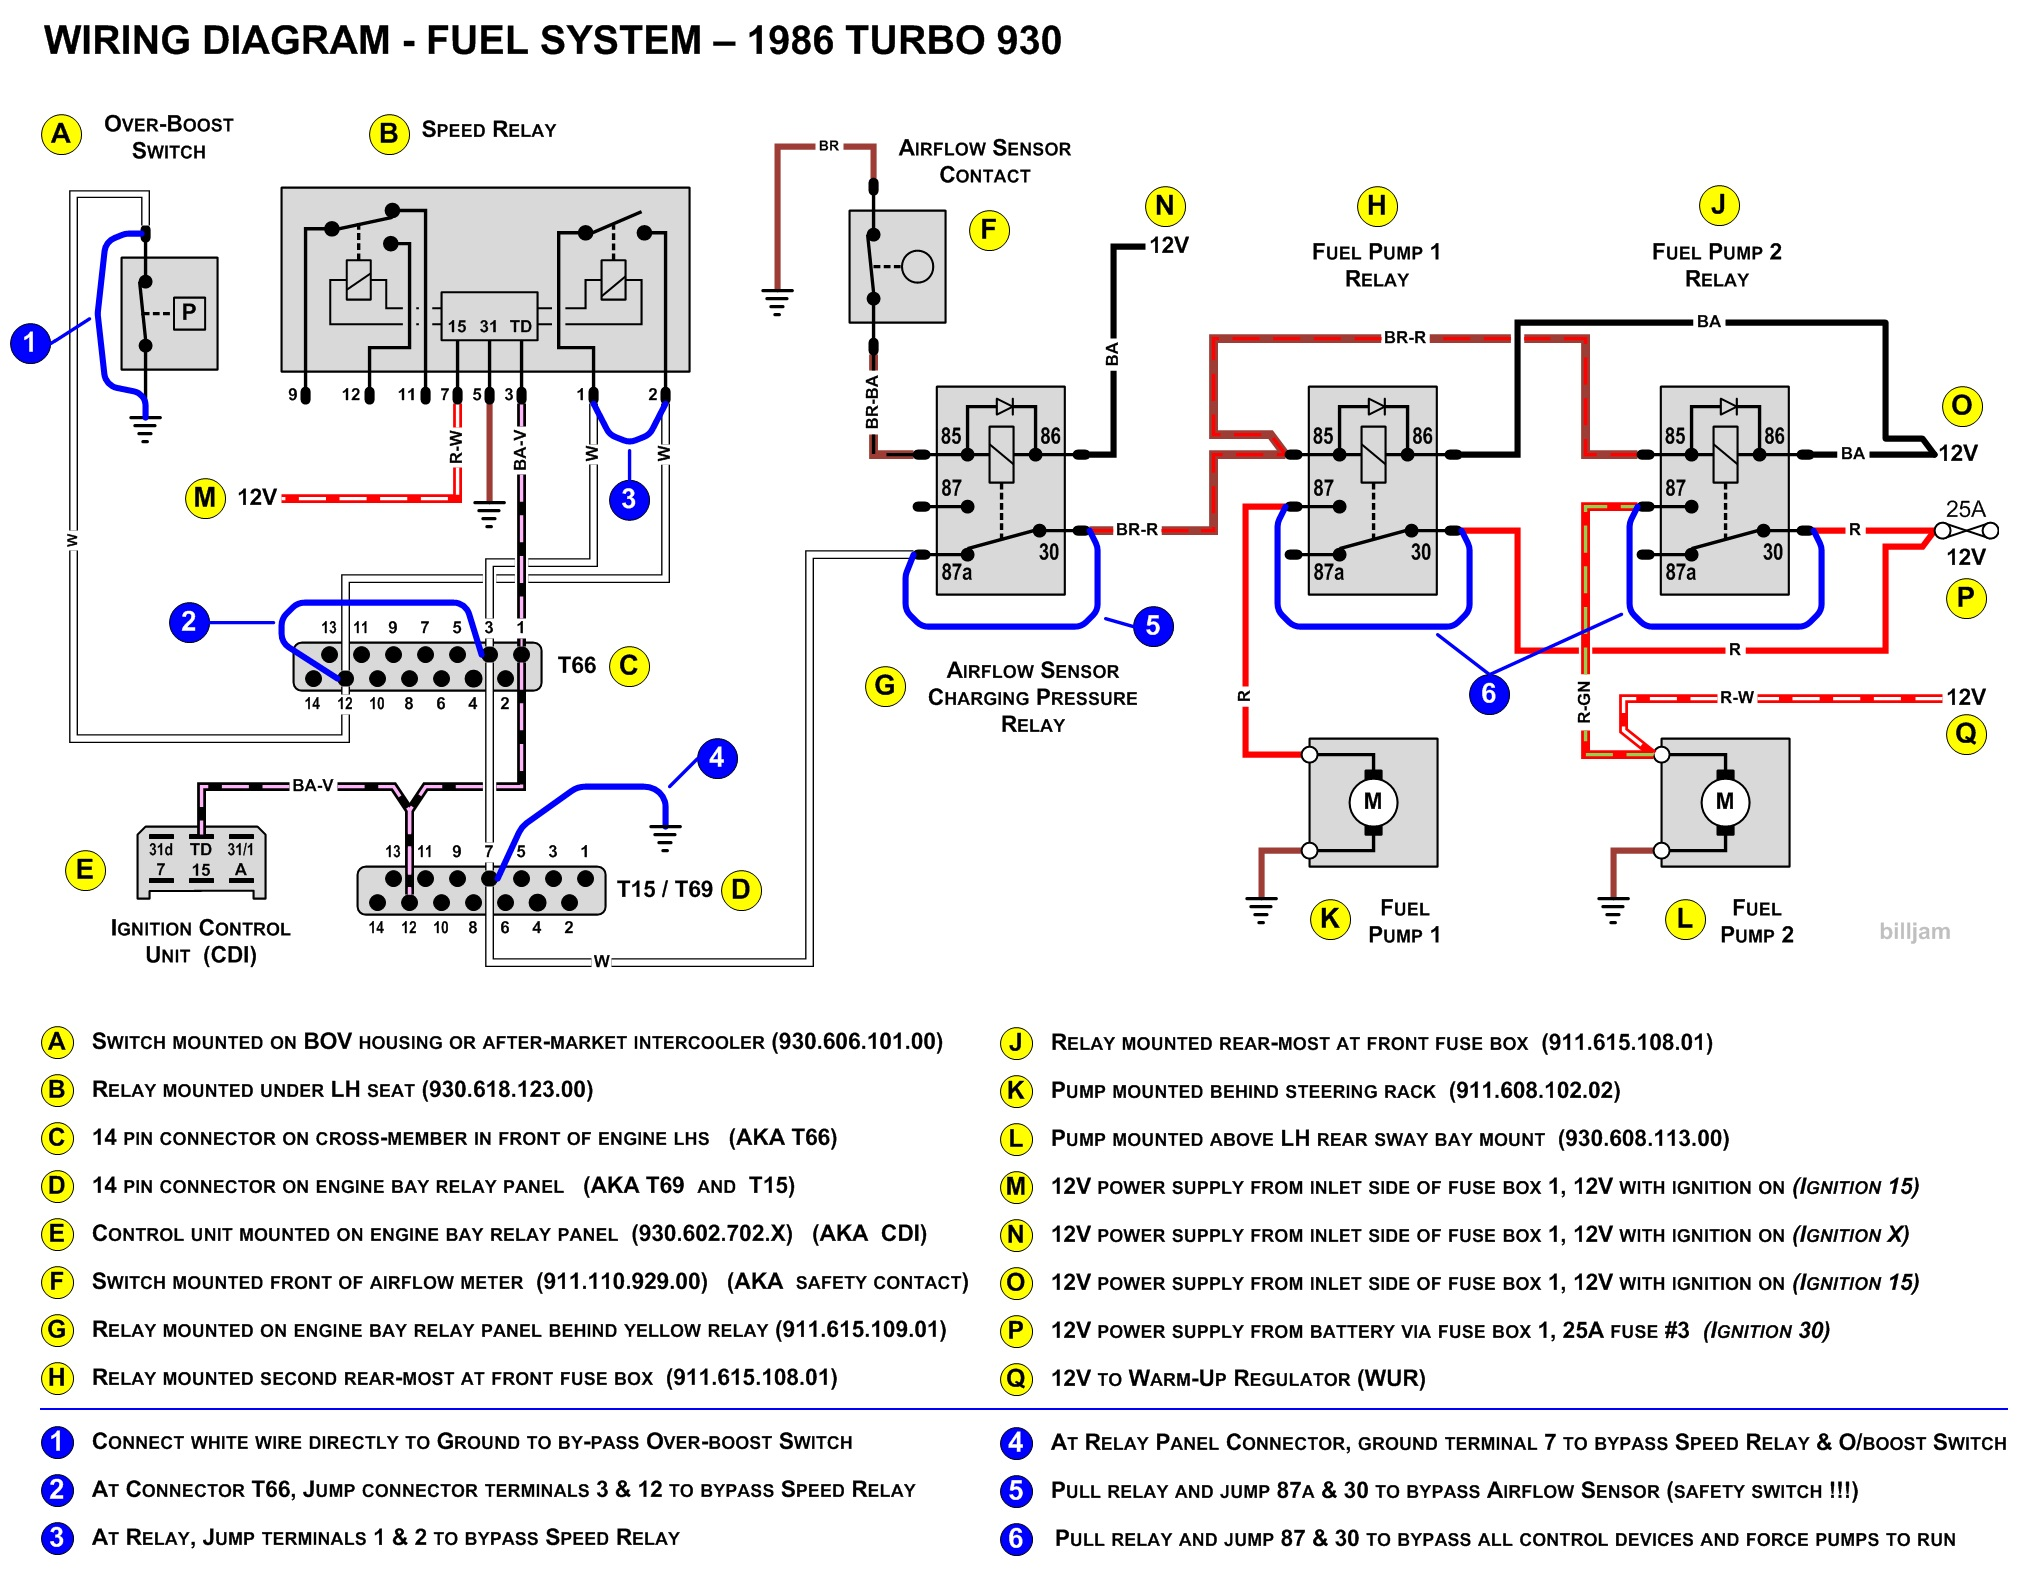 86 porsche 930 fuel system wiring diagram jumpers made a fuse box label for my 88 page 3 pelican parts technical bbs fuse box label at gsmx.co